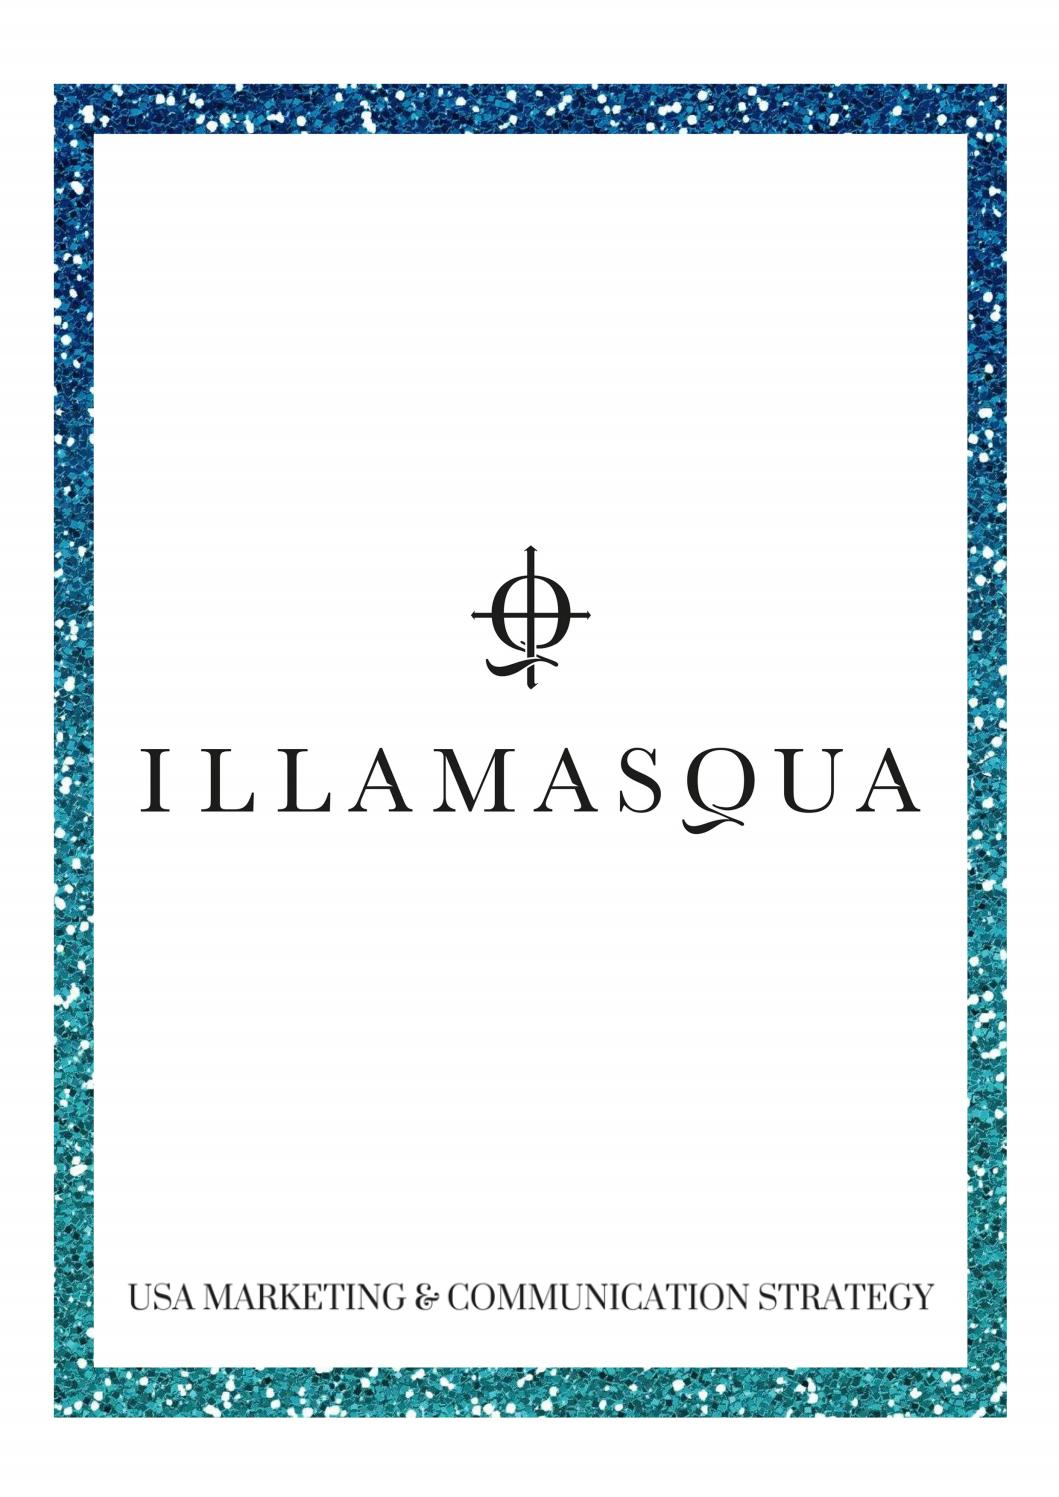 illamasqua marketing and communication strategy report by ruth illamasqua marketing and communication strategy report by ruth marlow